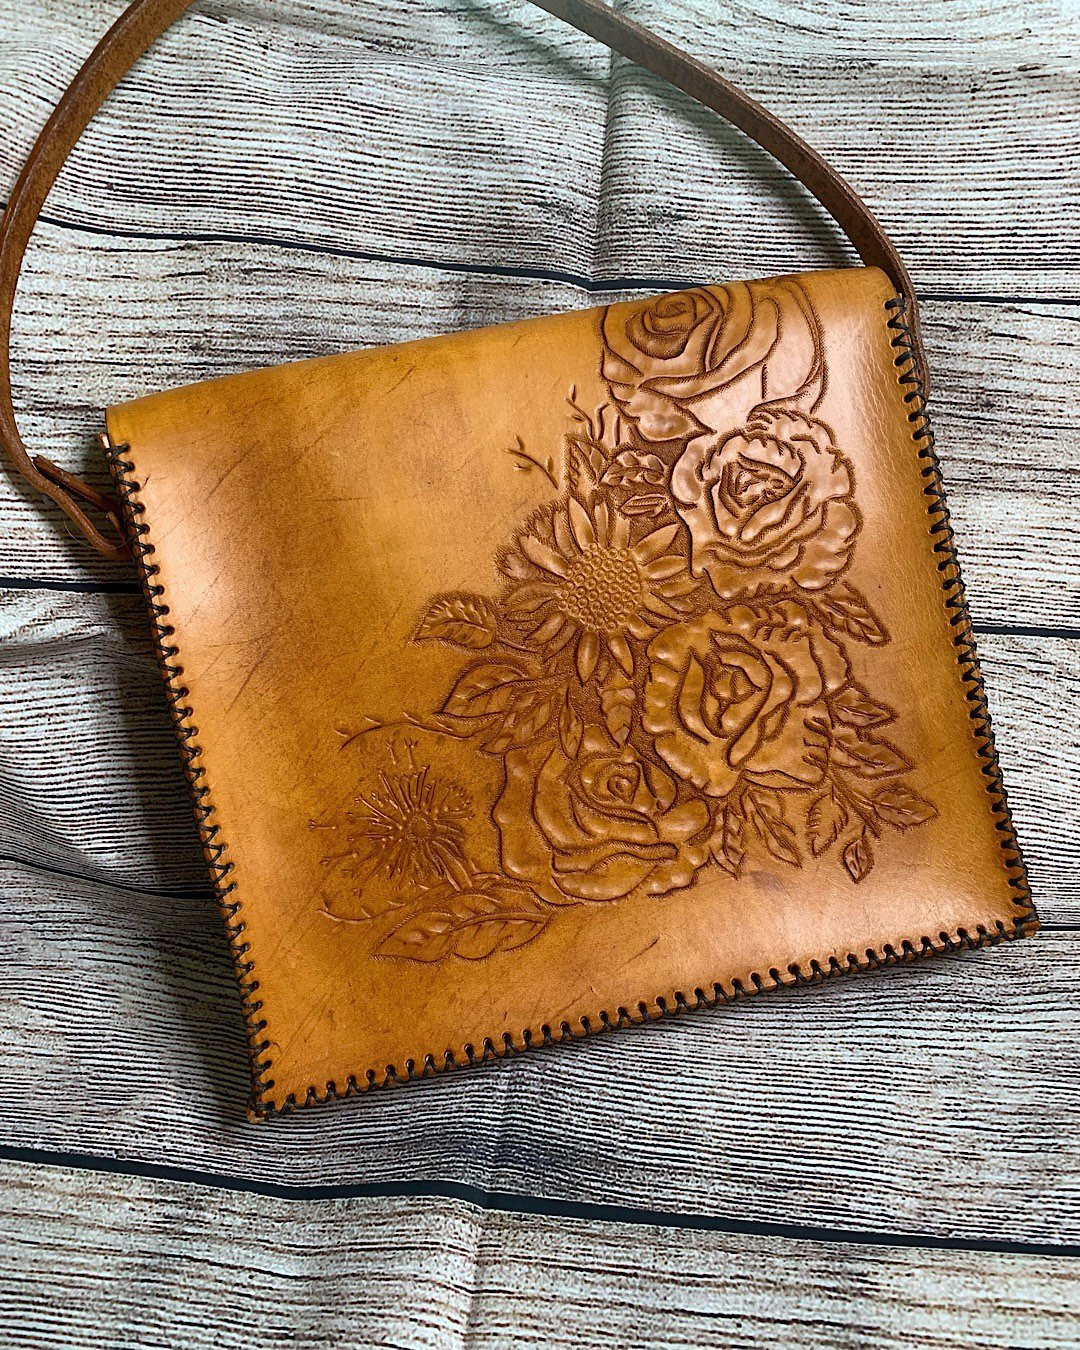 Gorgeous  carved leather handbag  with flowers and stitching around the edges